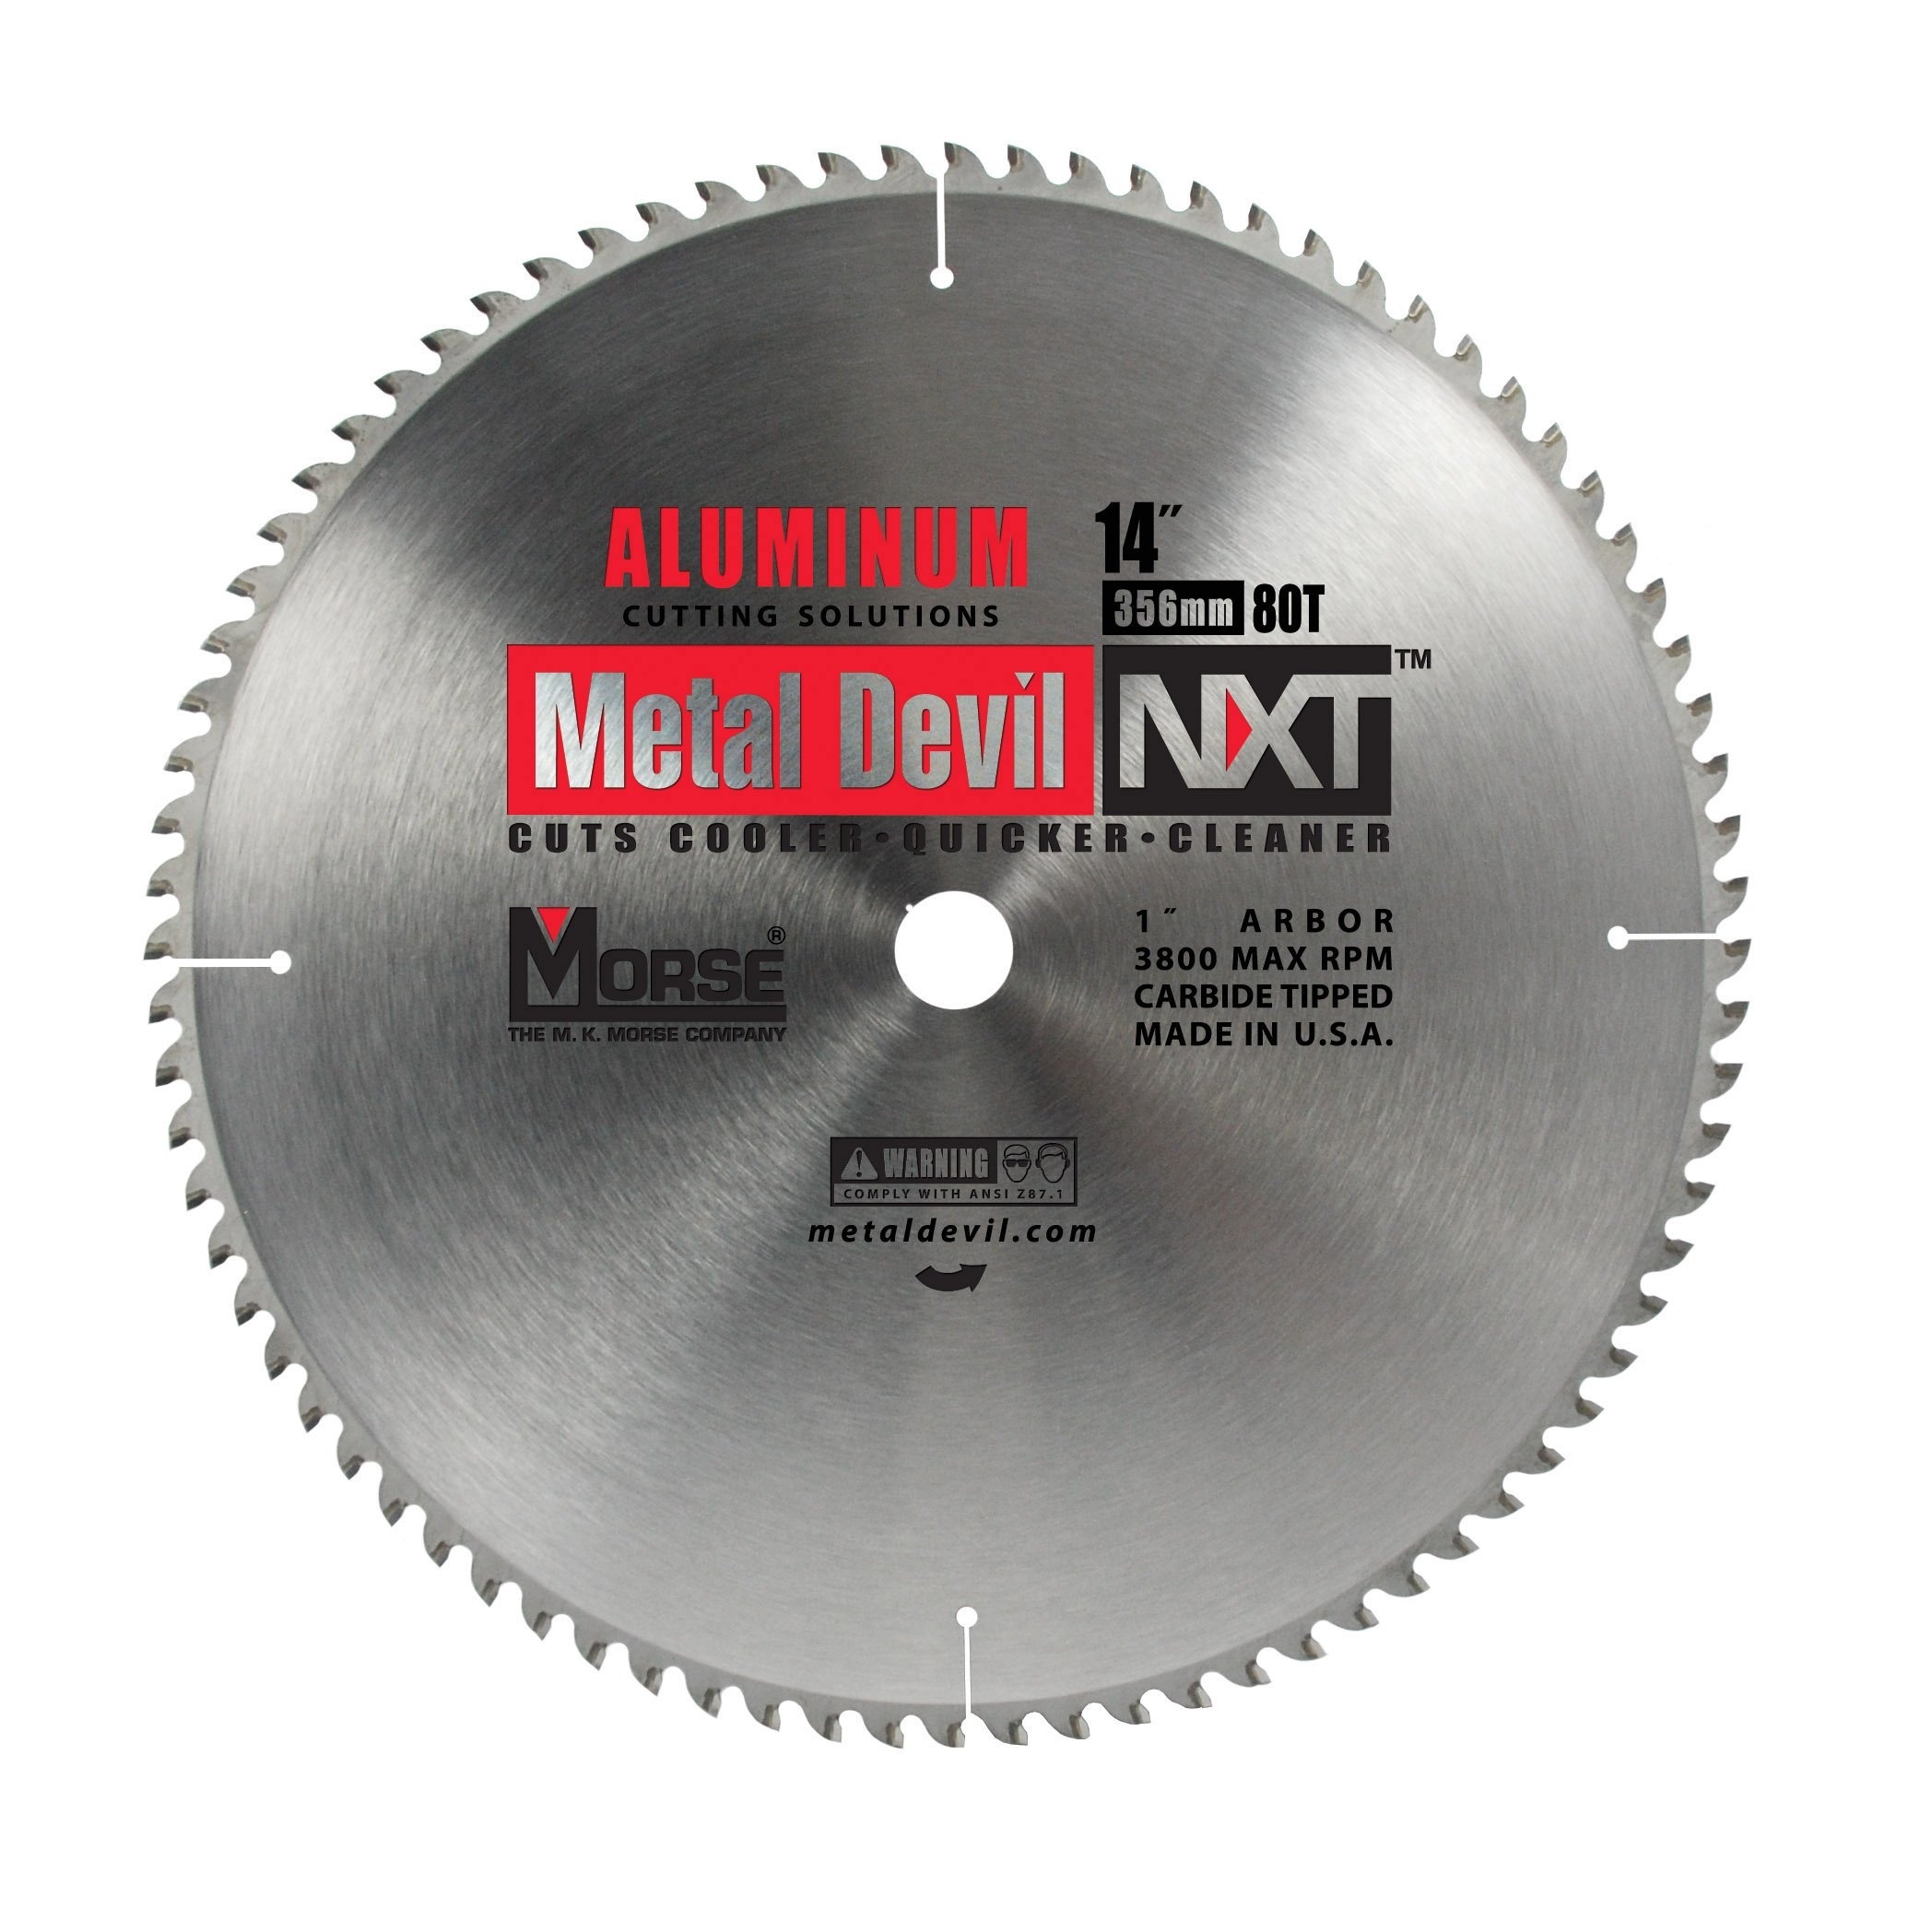 Morse CSM1480NAC Circular Blade for Cutting Aluminum, 14-Inch, 80 Teeth by Morse